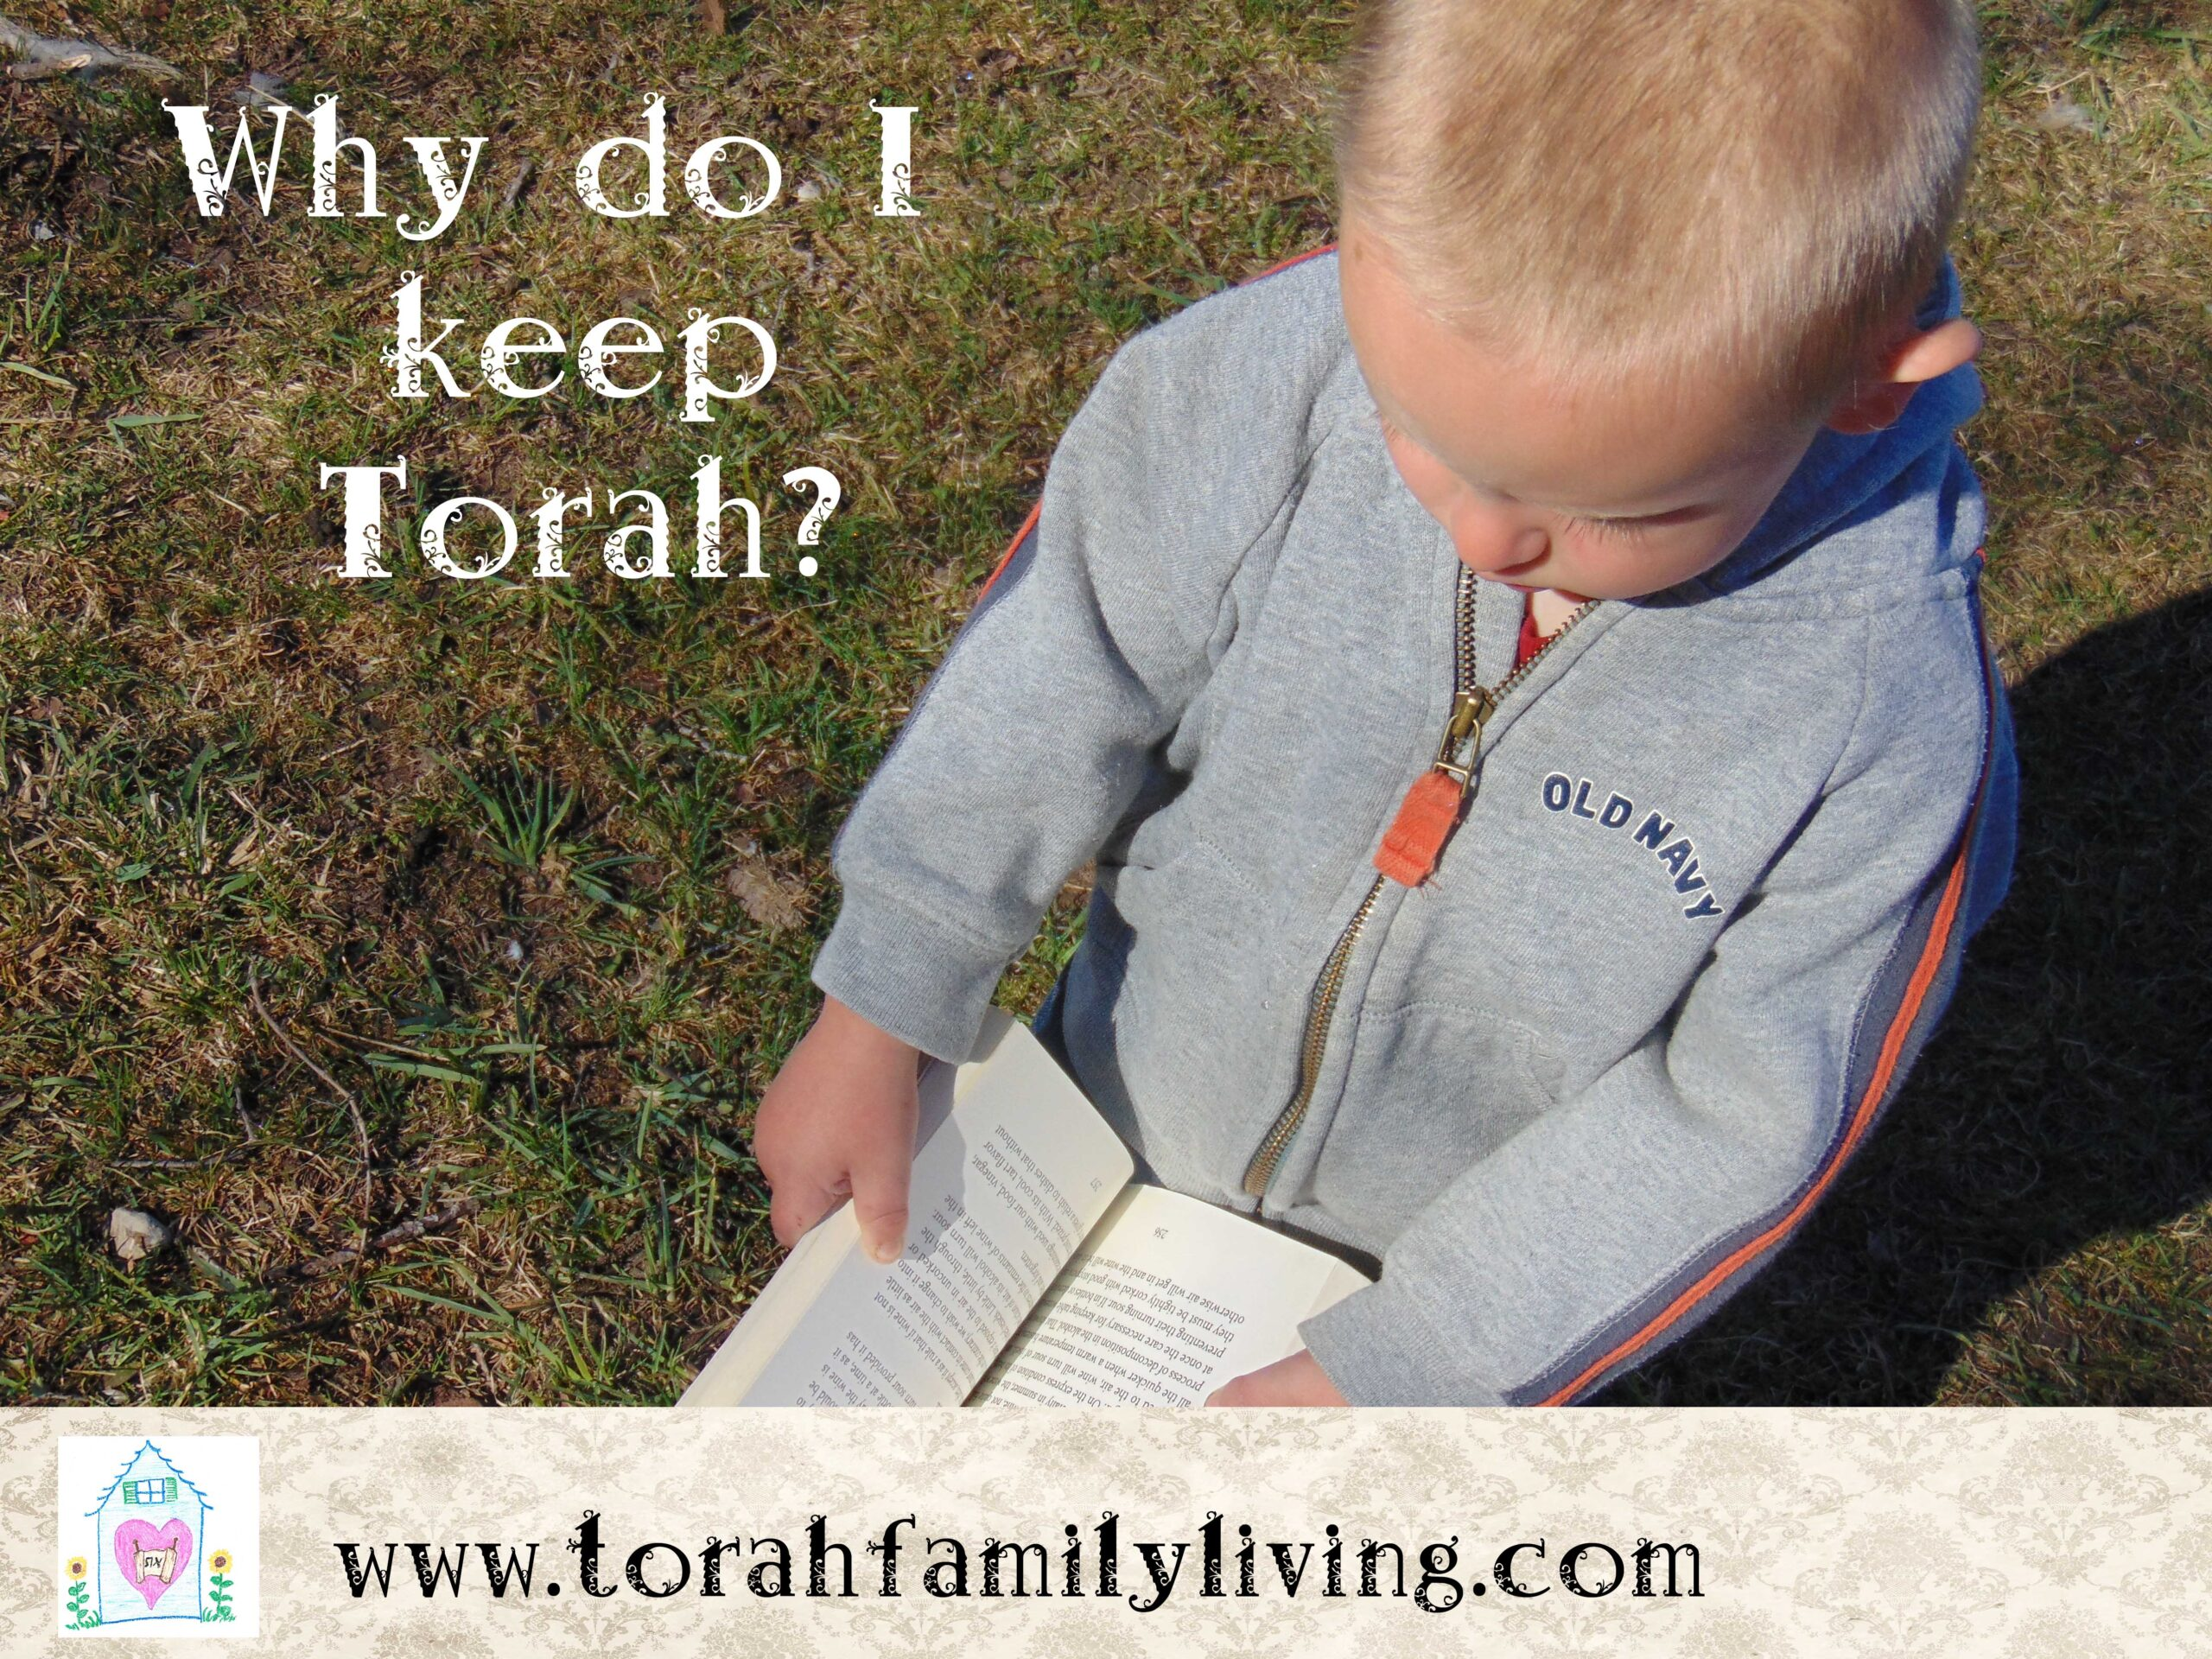 Why do I keep Torah?